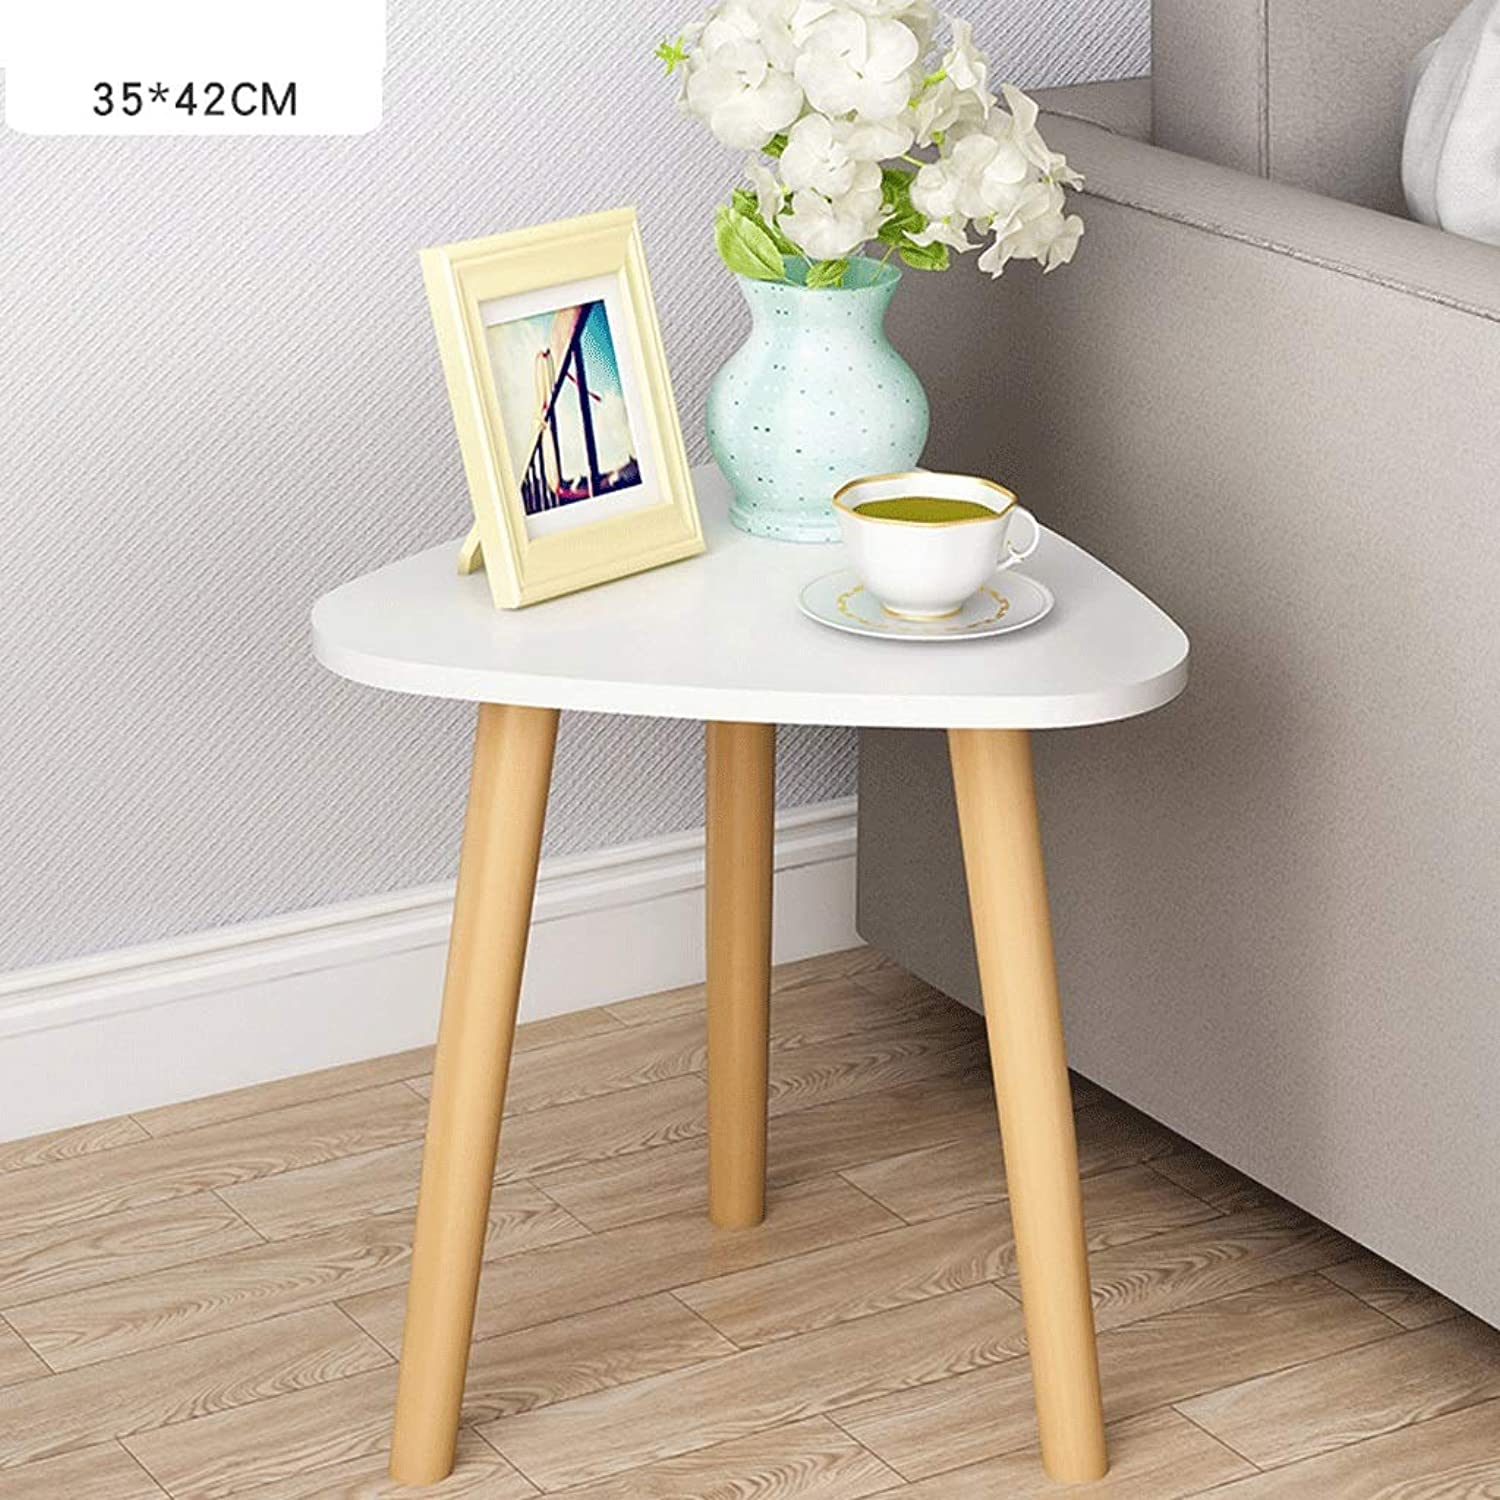 Coffee Table, Triangle Side Table Bedside Table, Sofa Side Table, Simple Corner Side Storage Small Table Solid Wood Table Legs, Multi-Functional Storage Table (color   White, Size   35CM)